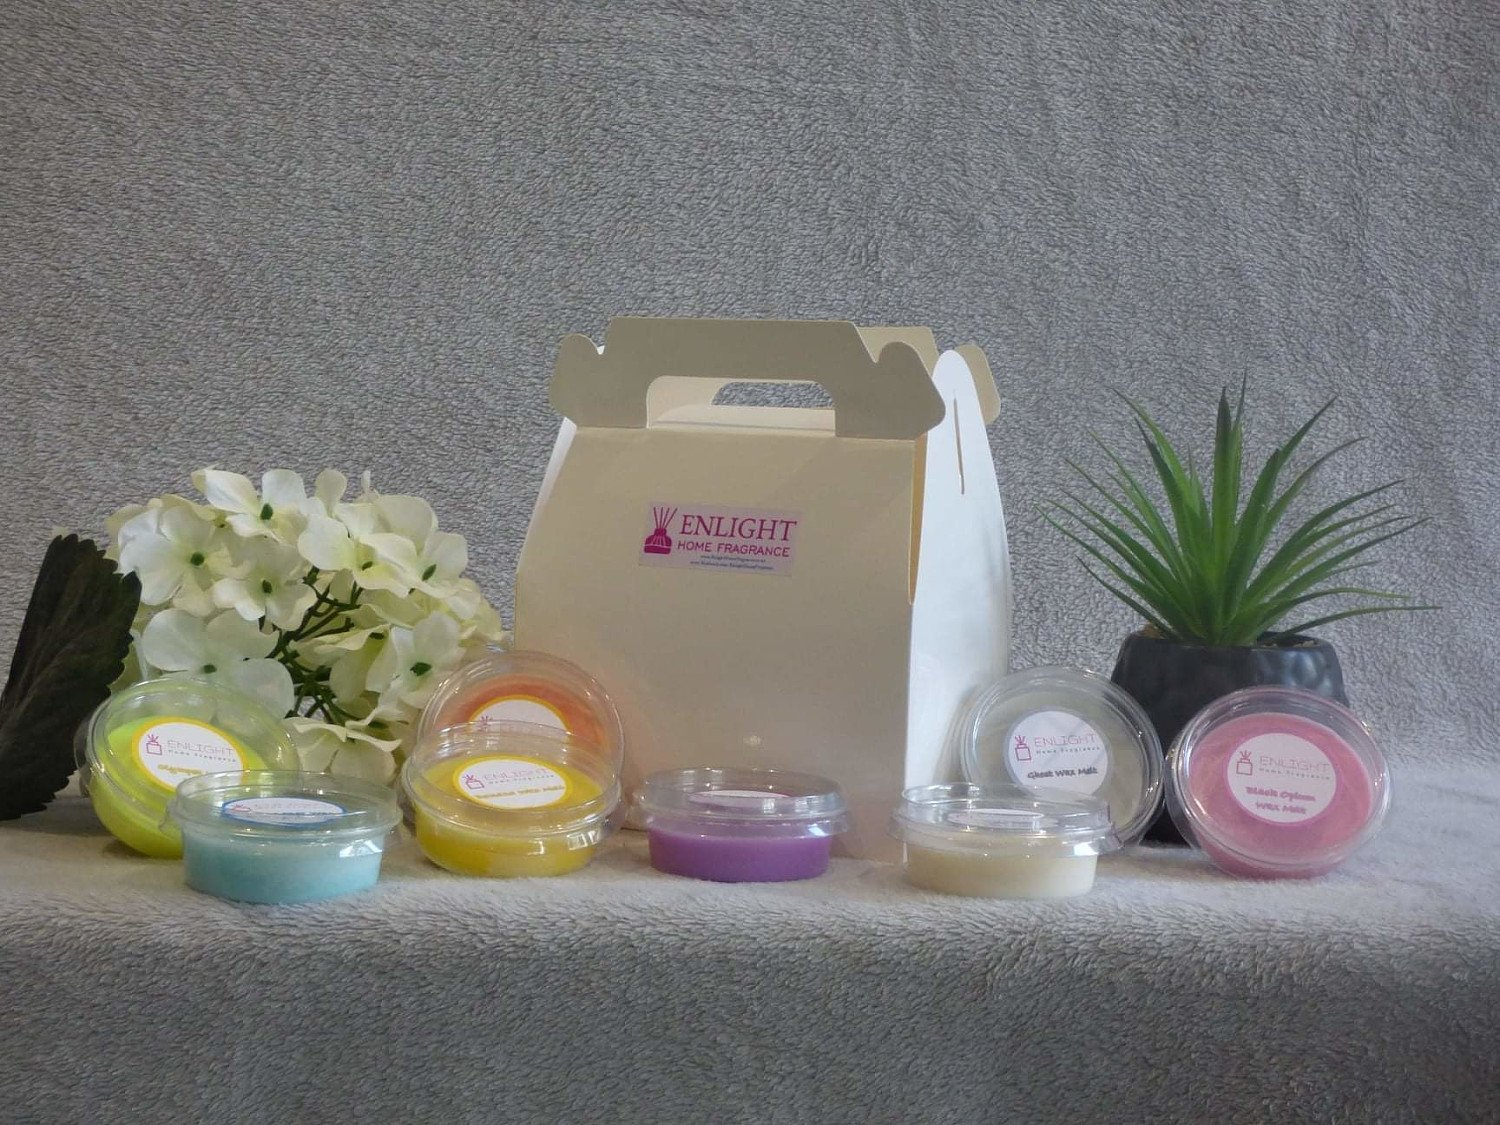 New, in stock. Soy wax ****, Bespoke gift boxes, happy fragrance box